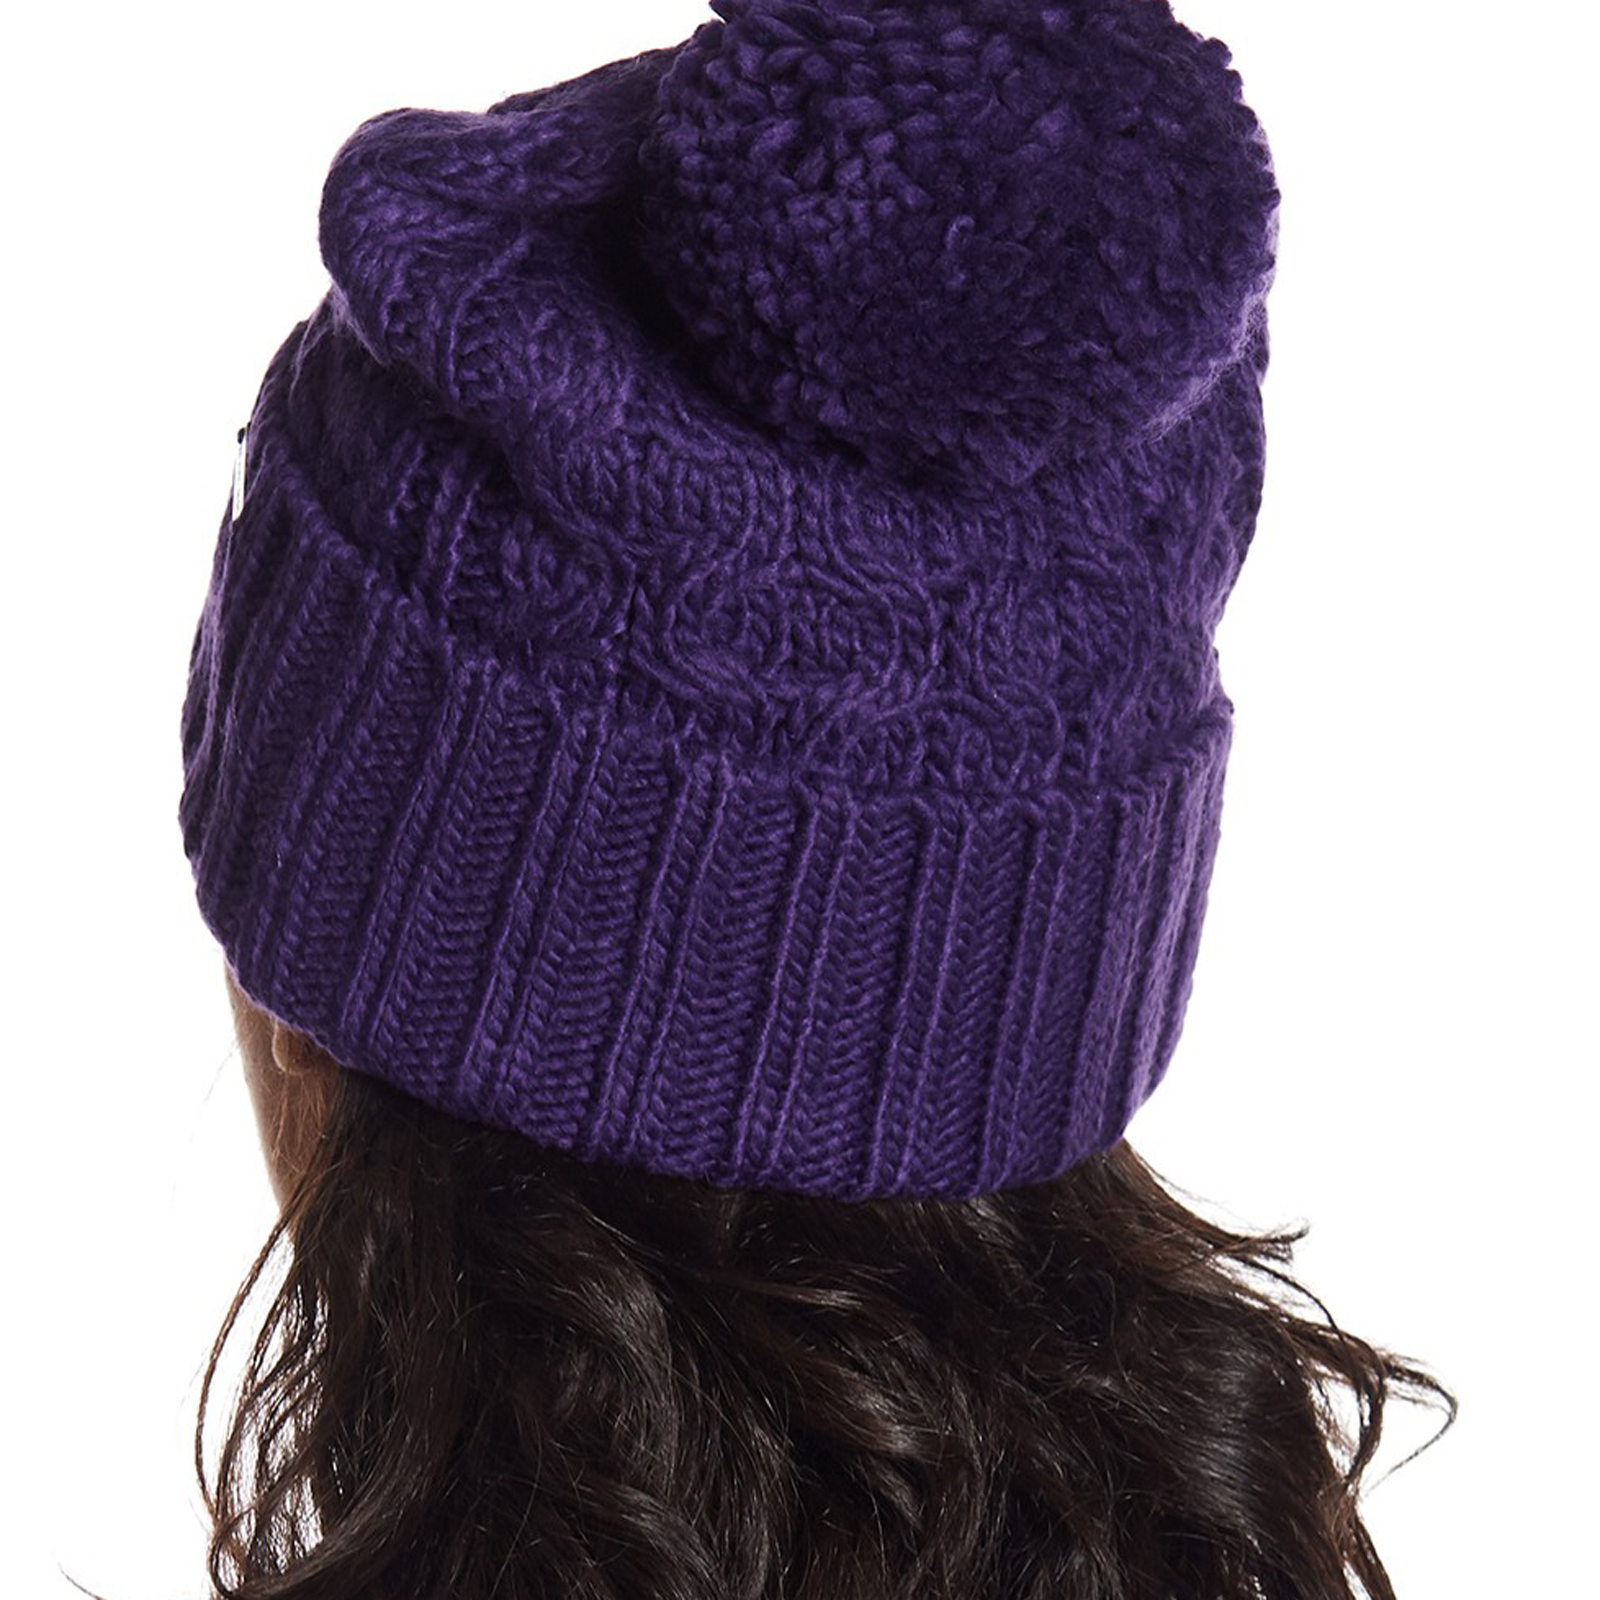 e555f180ba9 Pungles - Online Store - Cable Rib Knit Cuffed Pompom Purple Beanie Hat